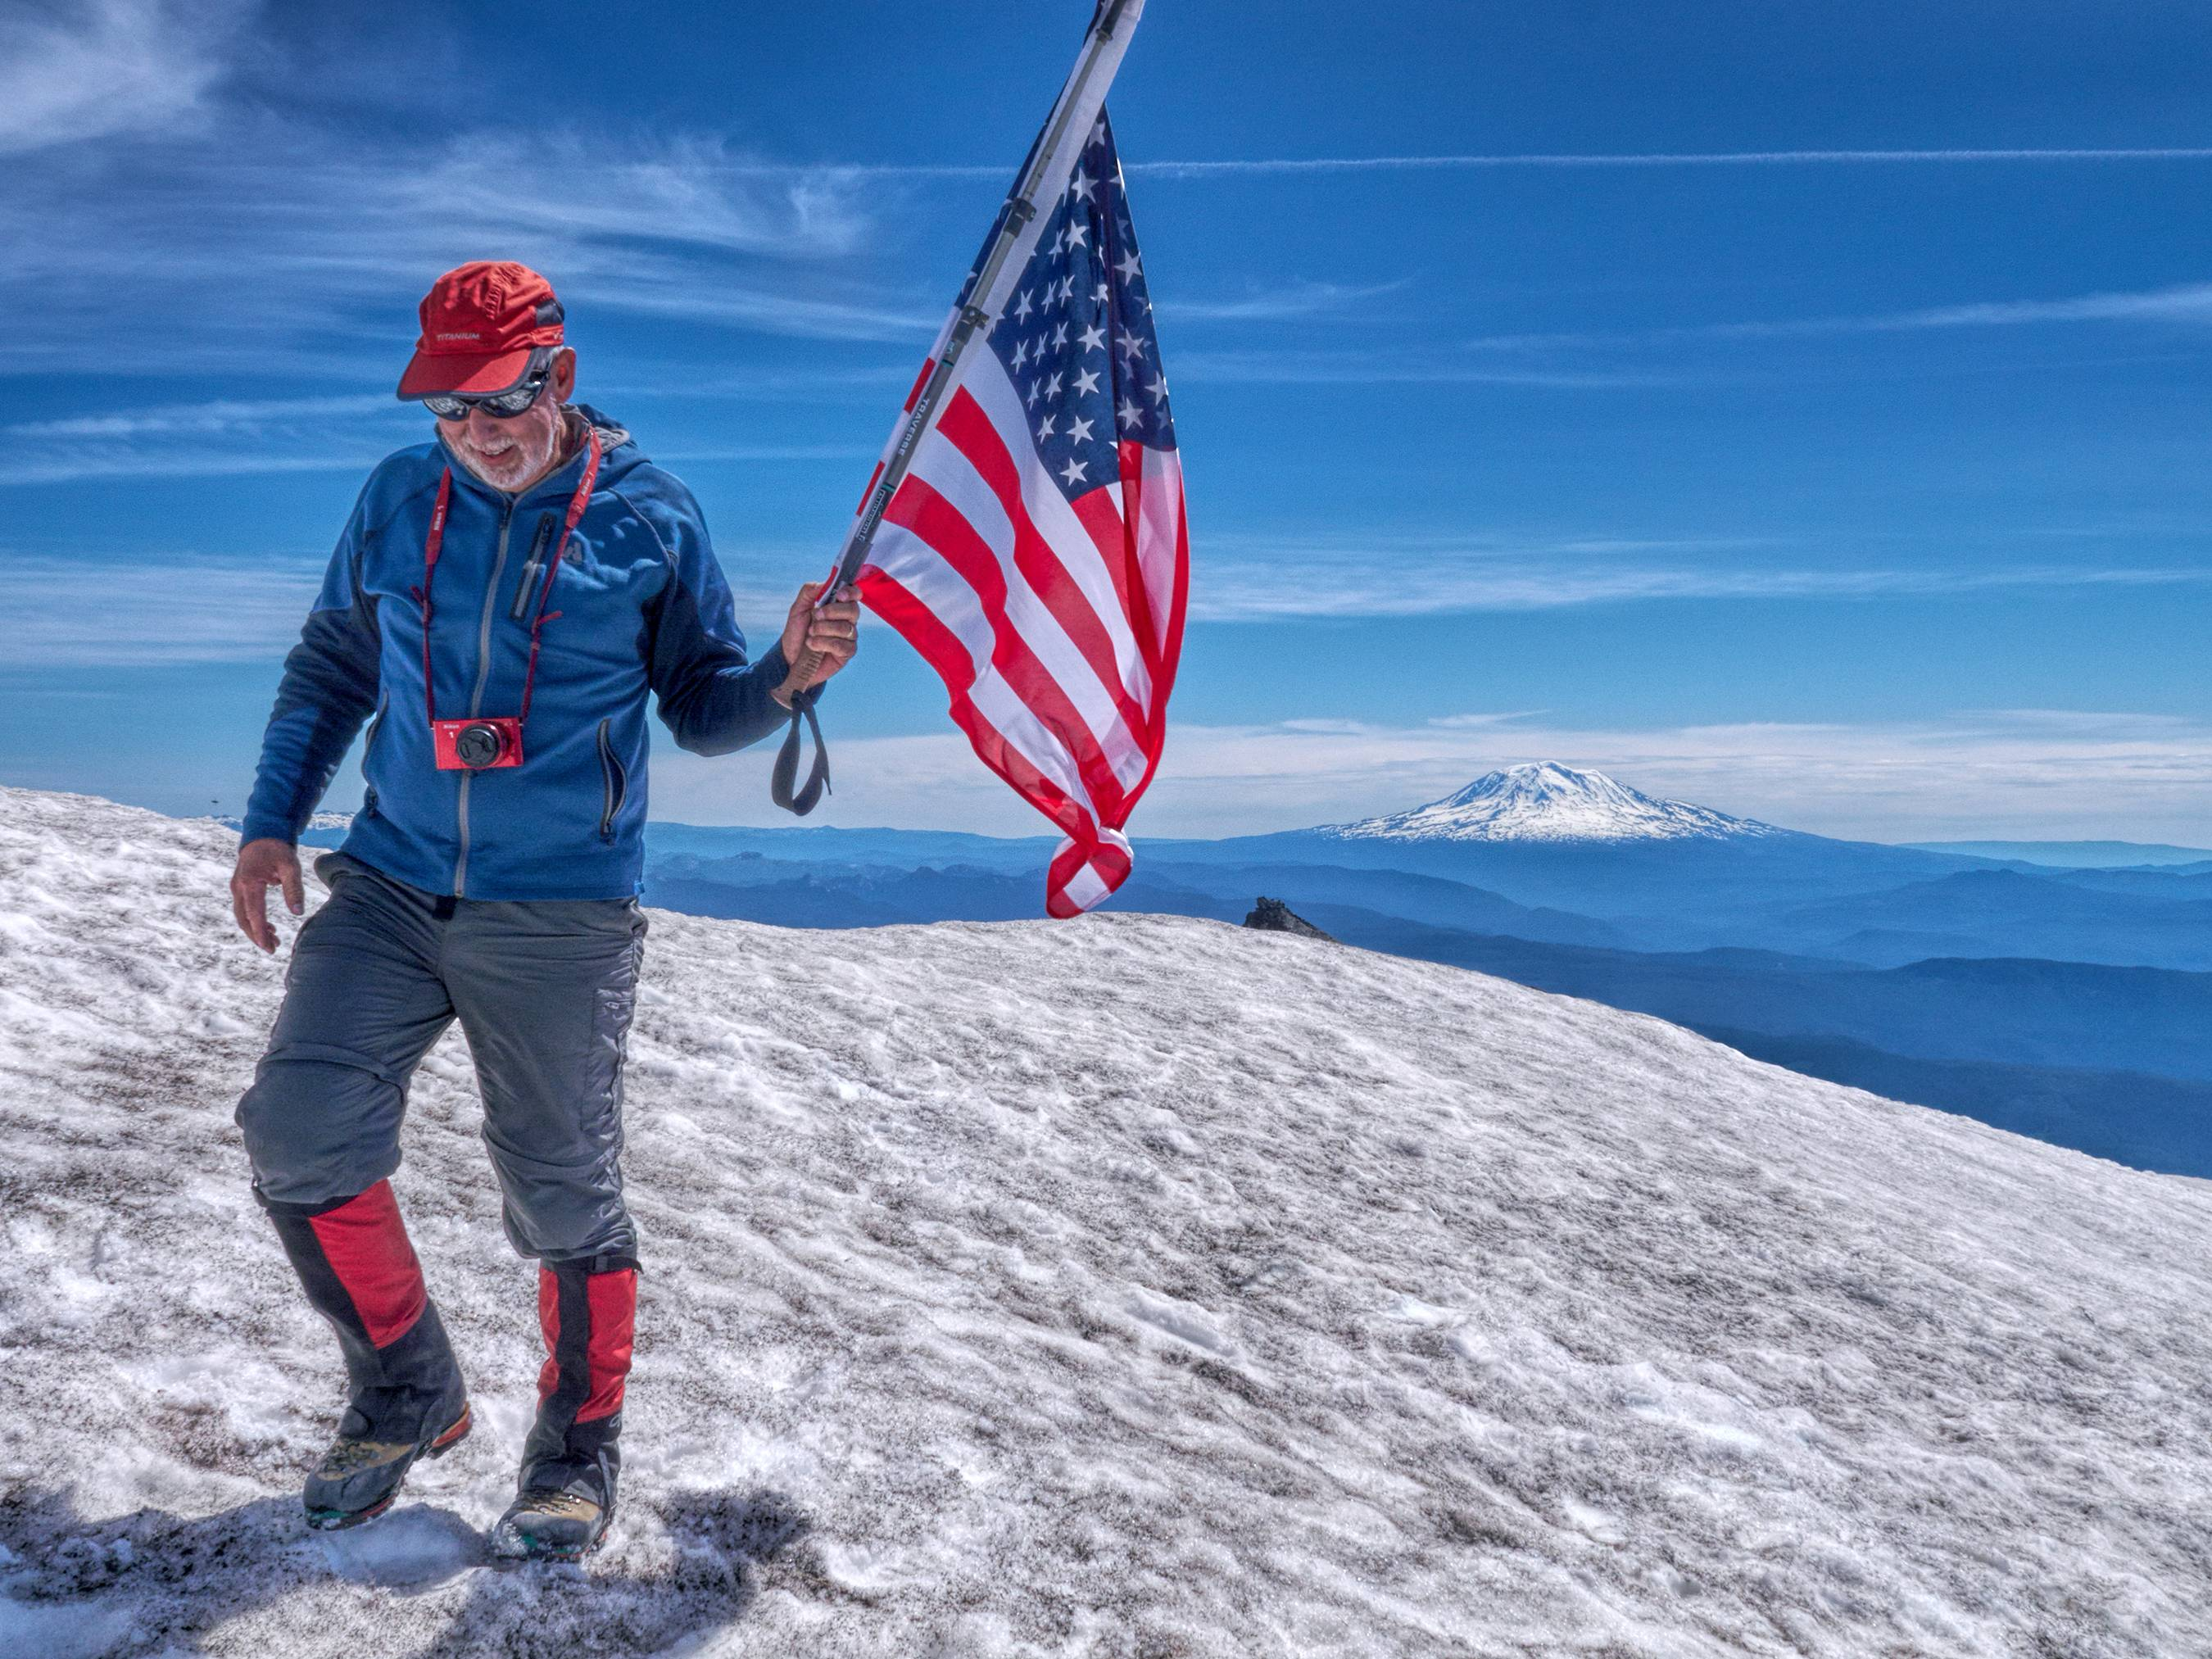 Bruce Alber of Vancouver, Washington, celebrates the Fourth of July and reaching summit of Mount St. Helens. He has climbed it six times since 2011.